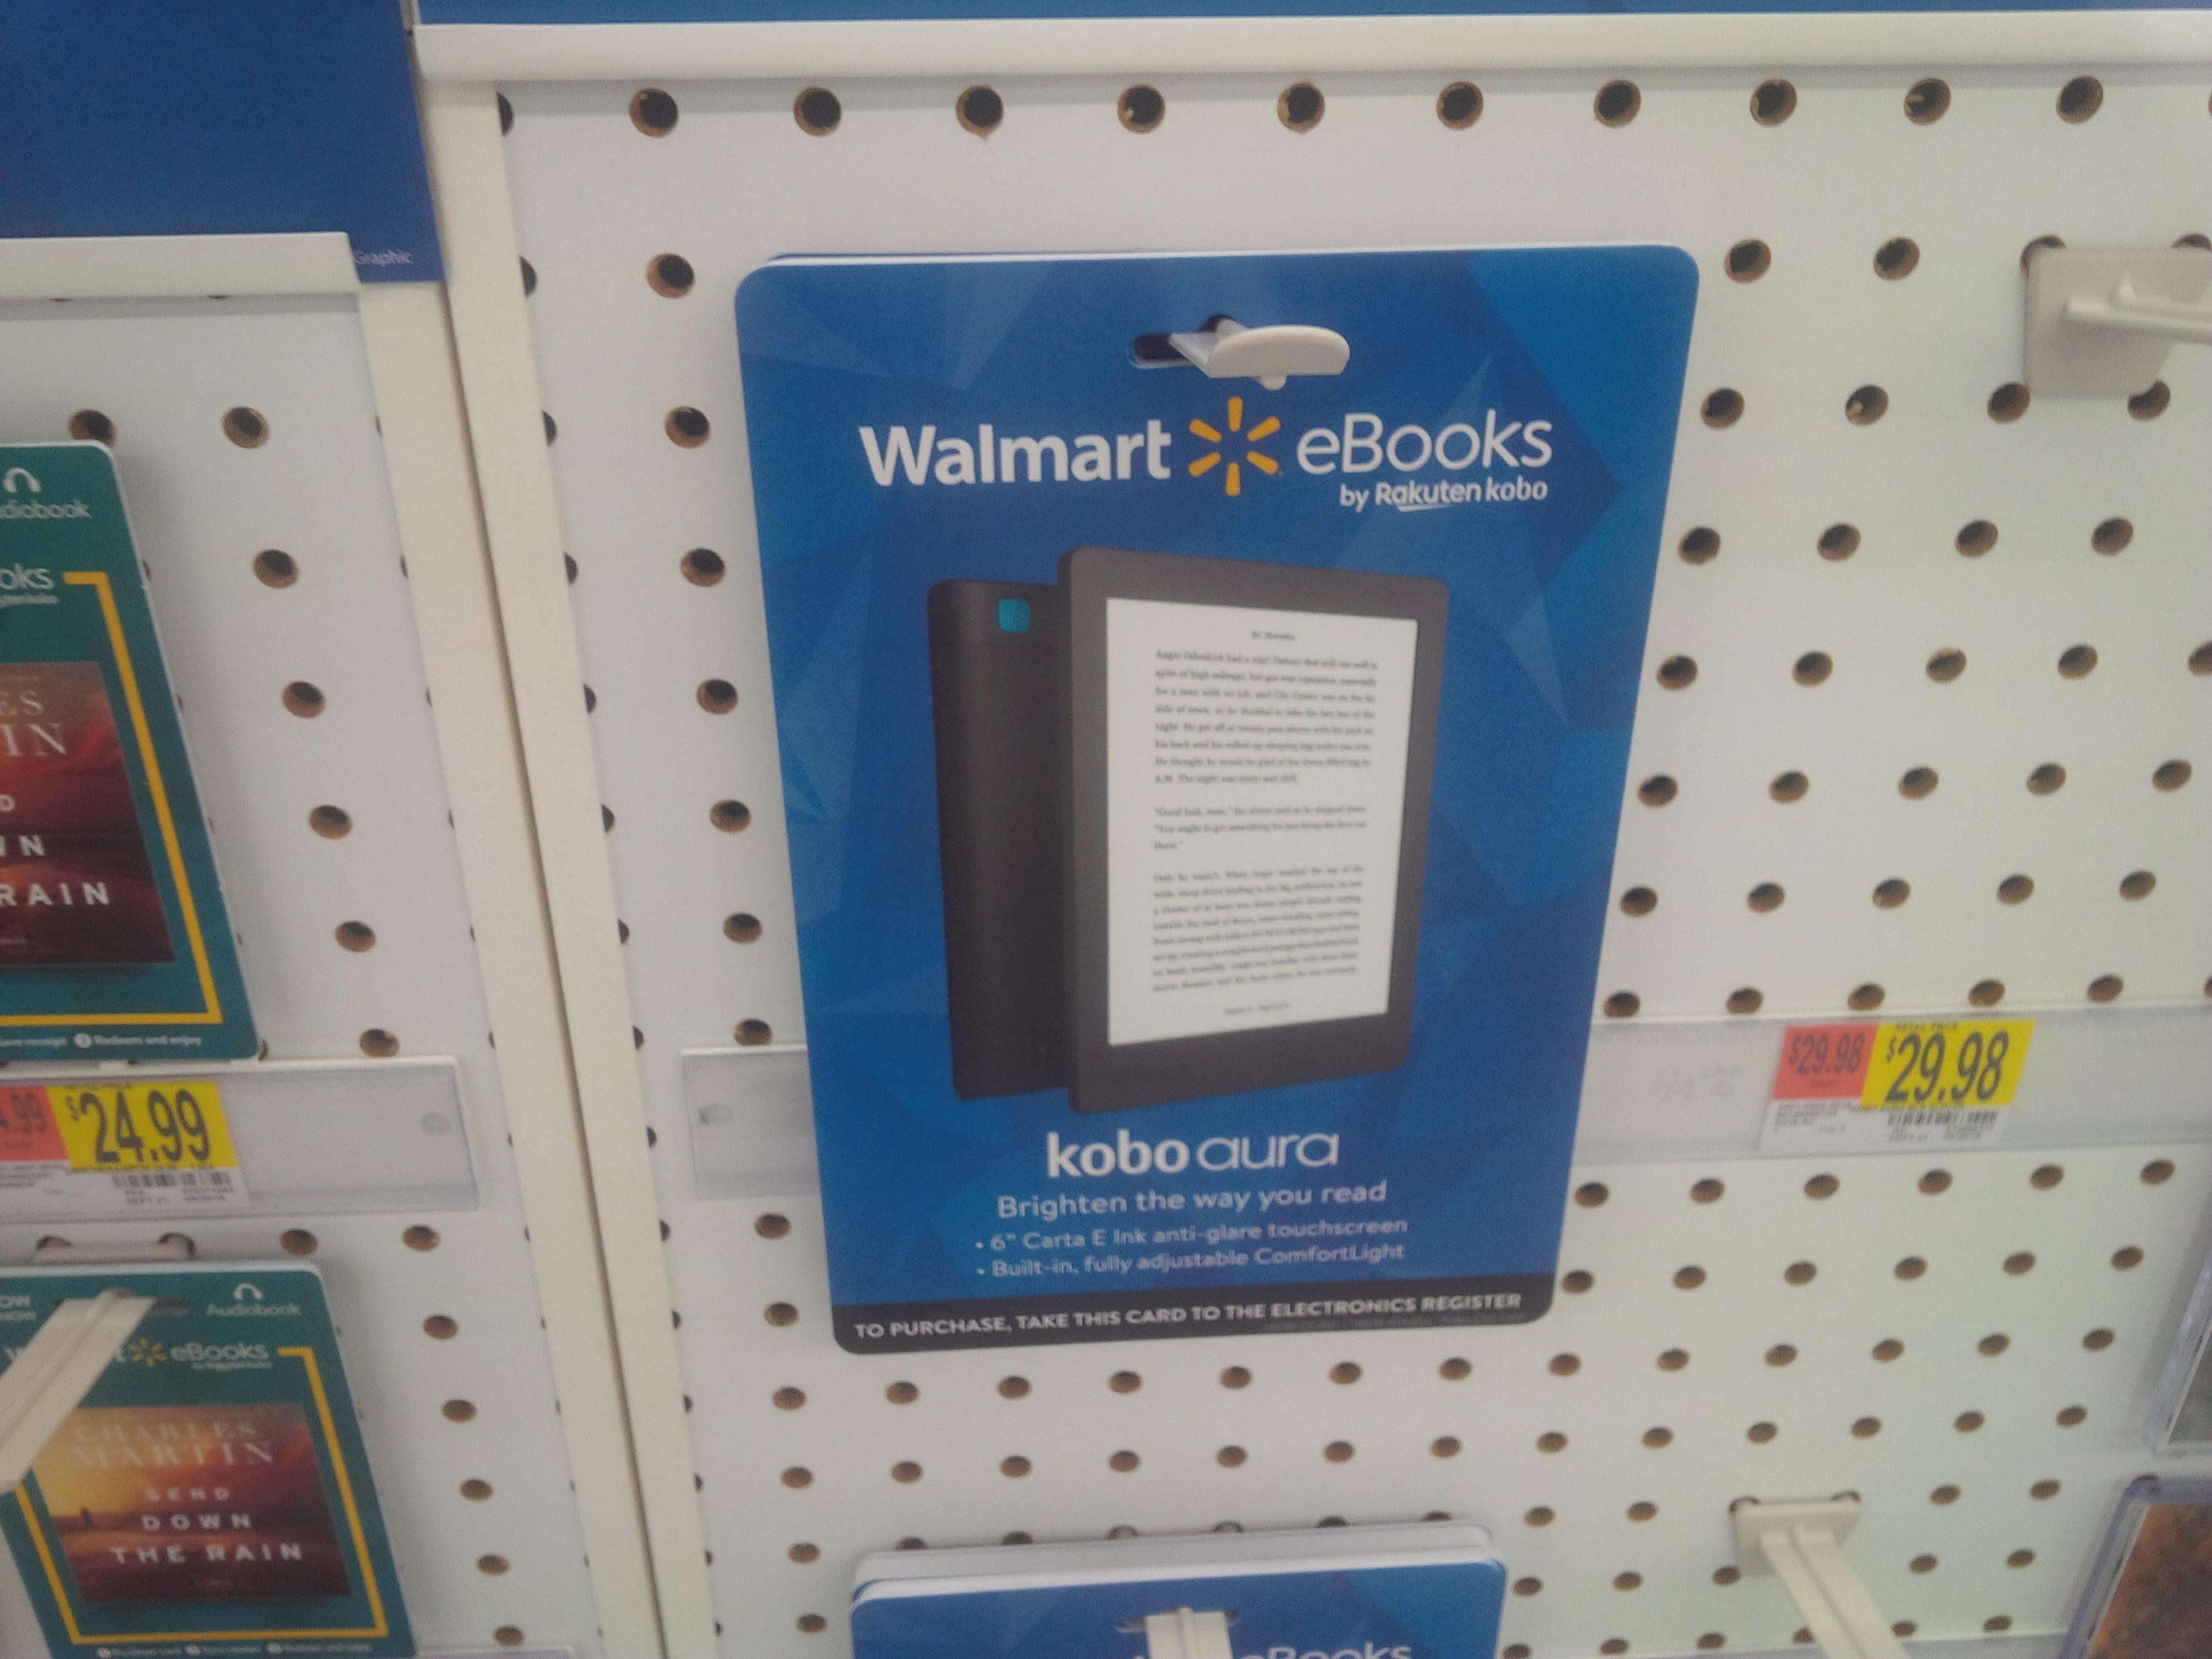 Exclusive: Here is everything you need to know about Kobo at Walmart